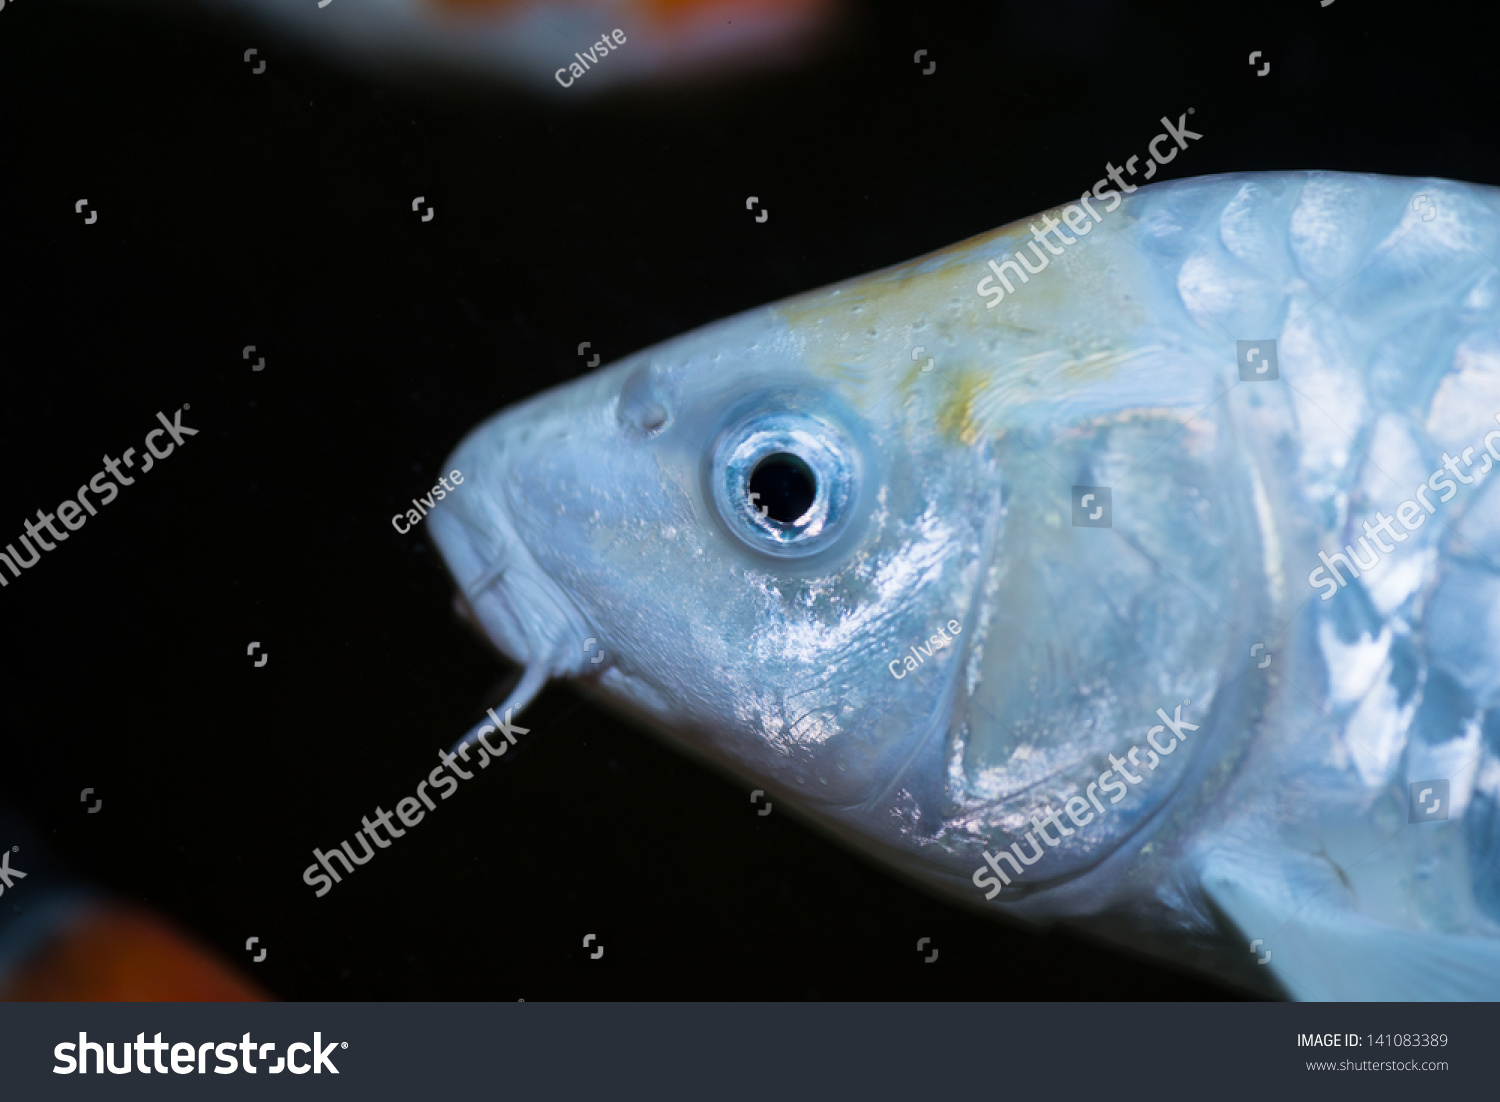 White koi fish side view close up stock photo 141083389 for What sides go with fish